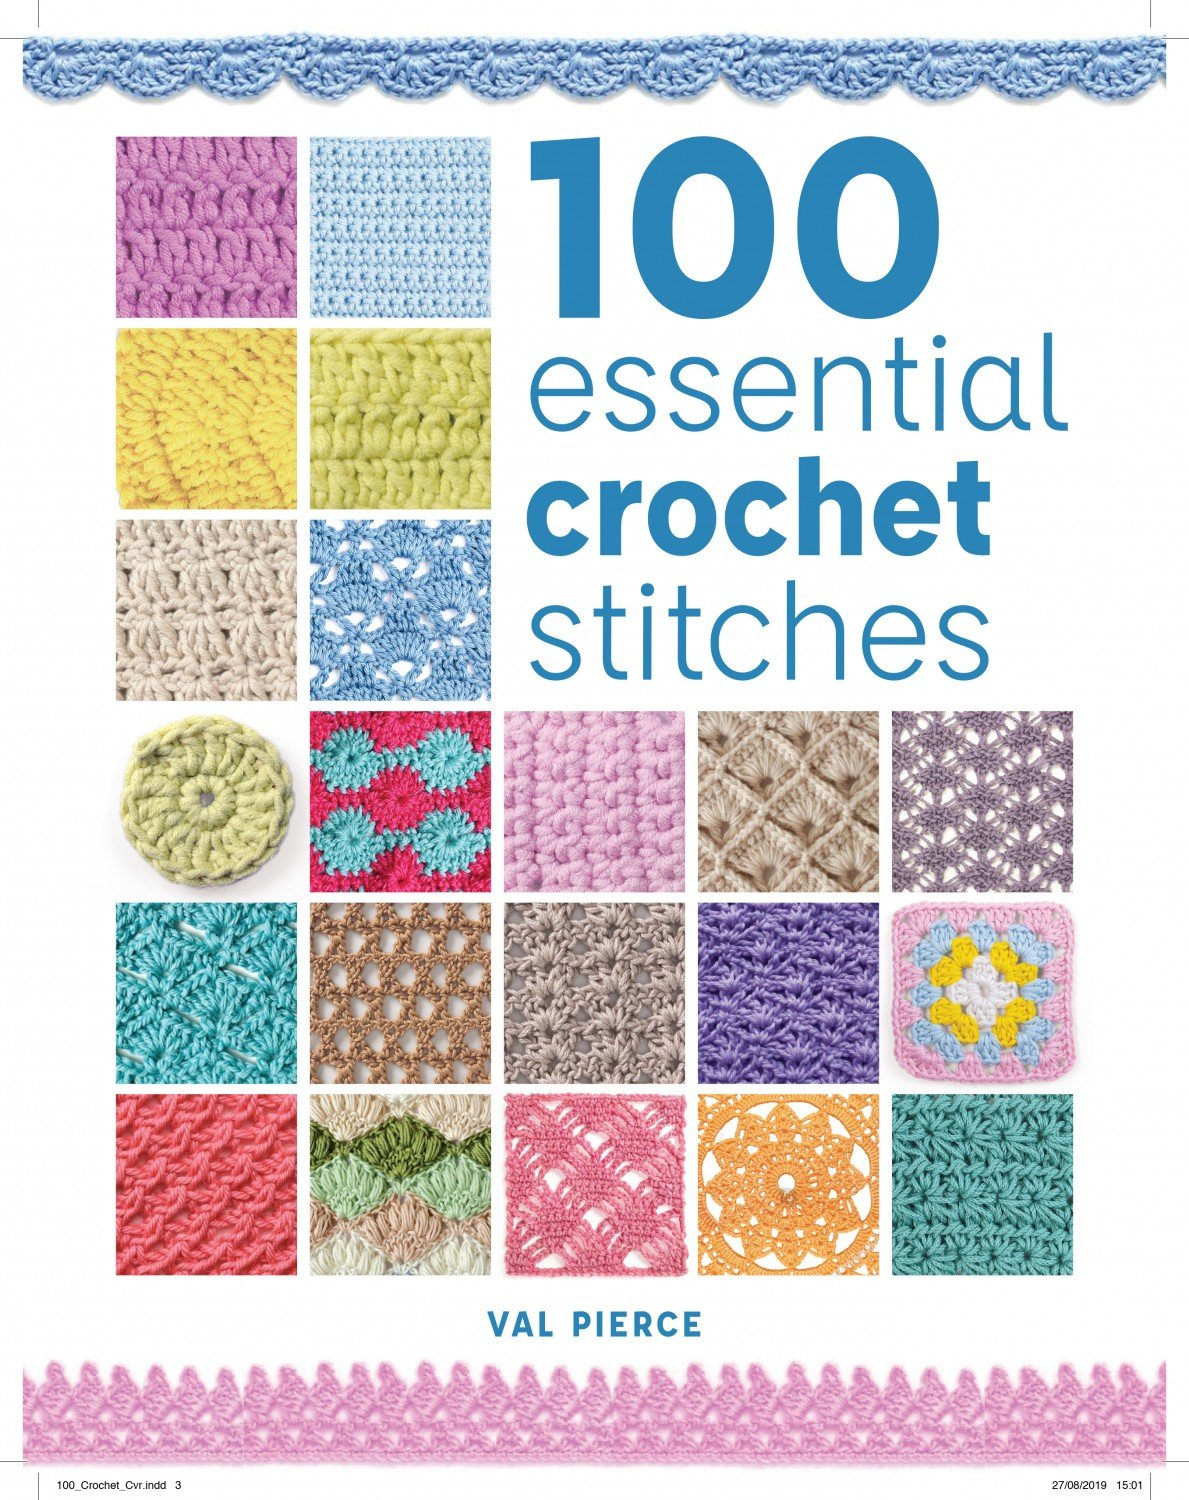 100 Essential Crochet Stitches ~RELEASE DATE May 11, 2020~